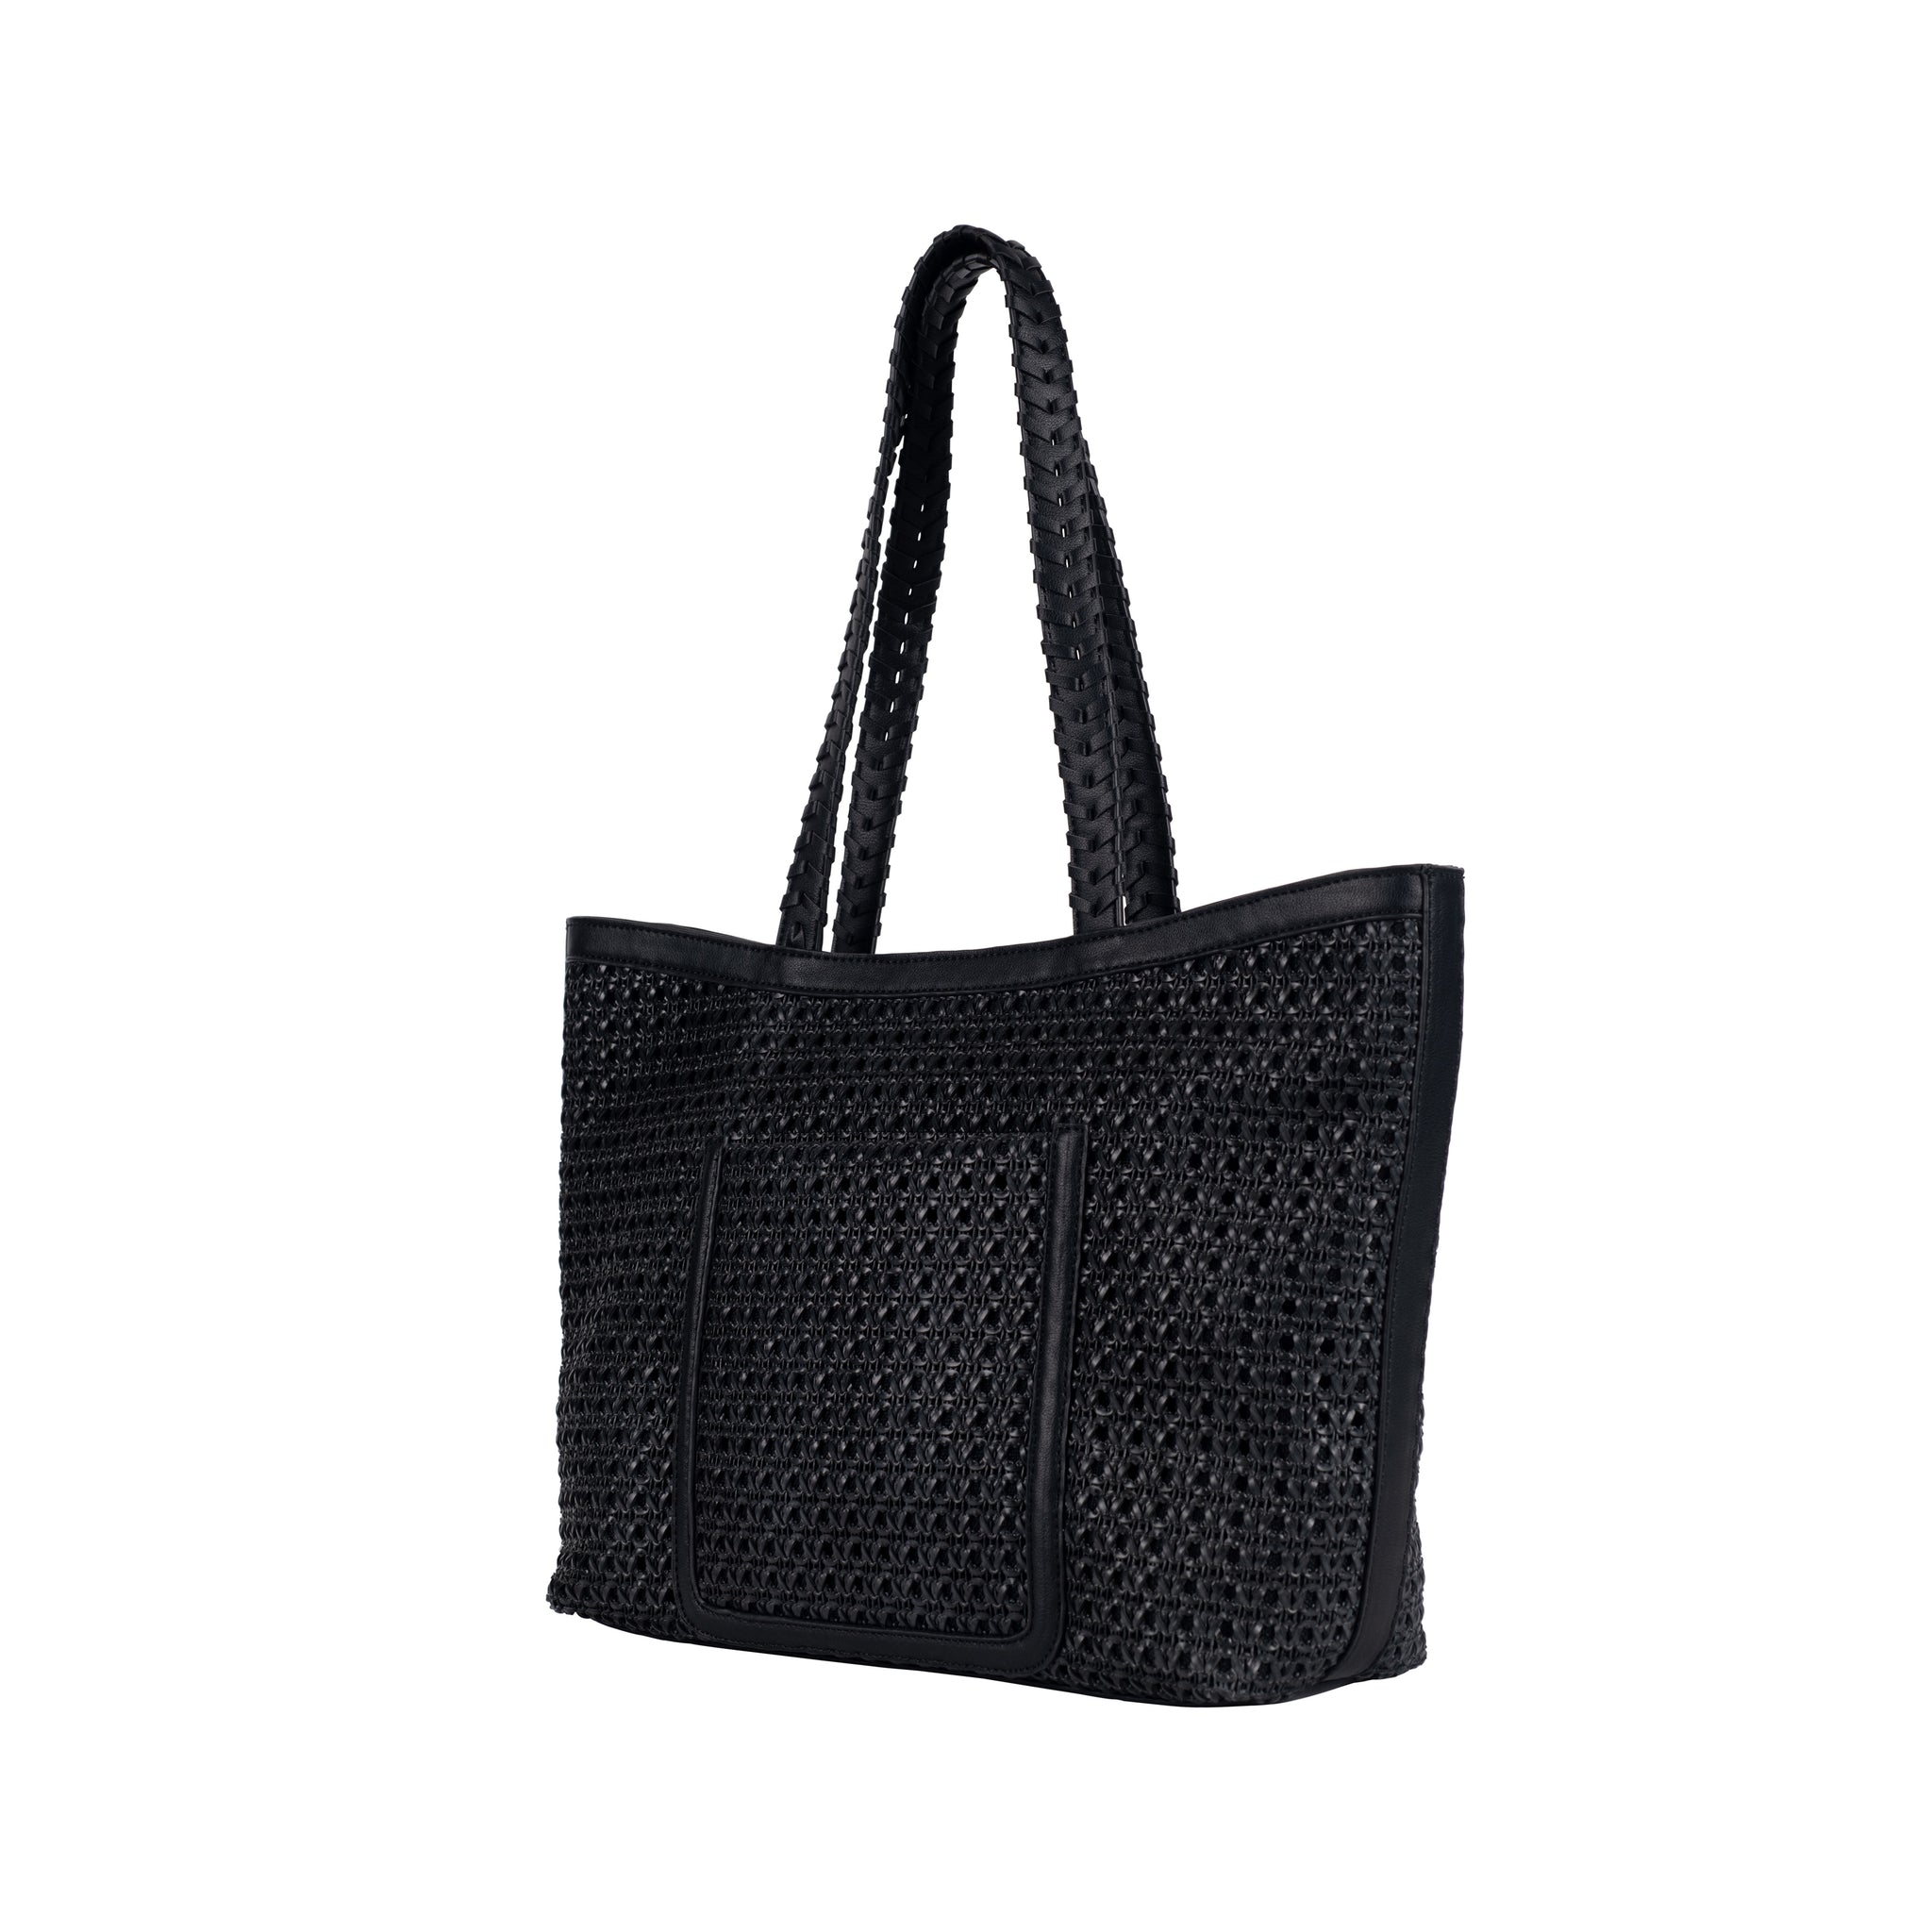 Woven Vegan Leather Tote